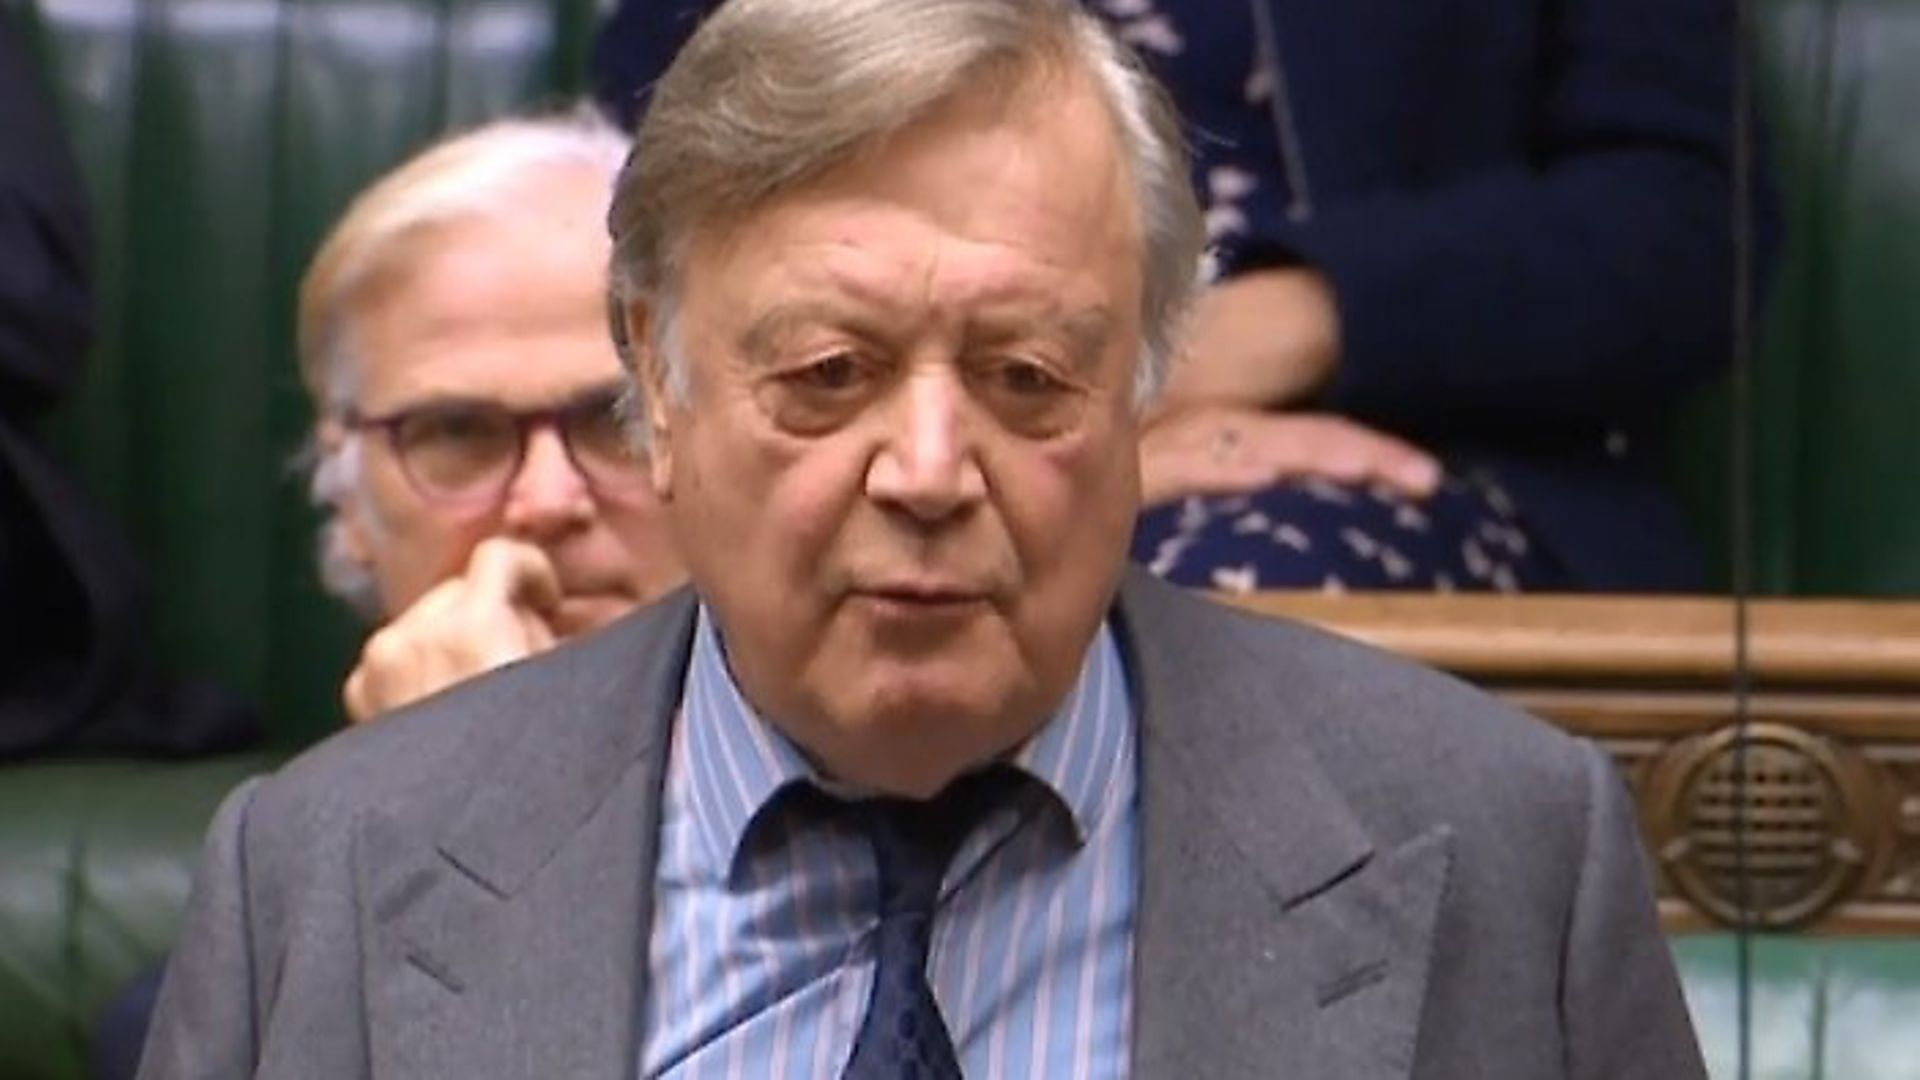 Ken Clarke in the House of Commons. Photograph: Parliament TV. - Credit: Archant